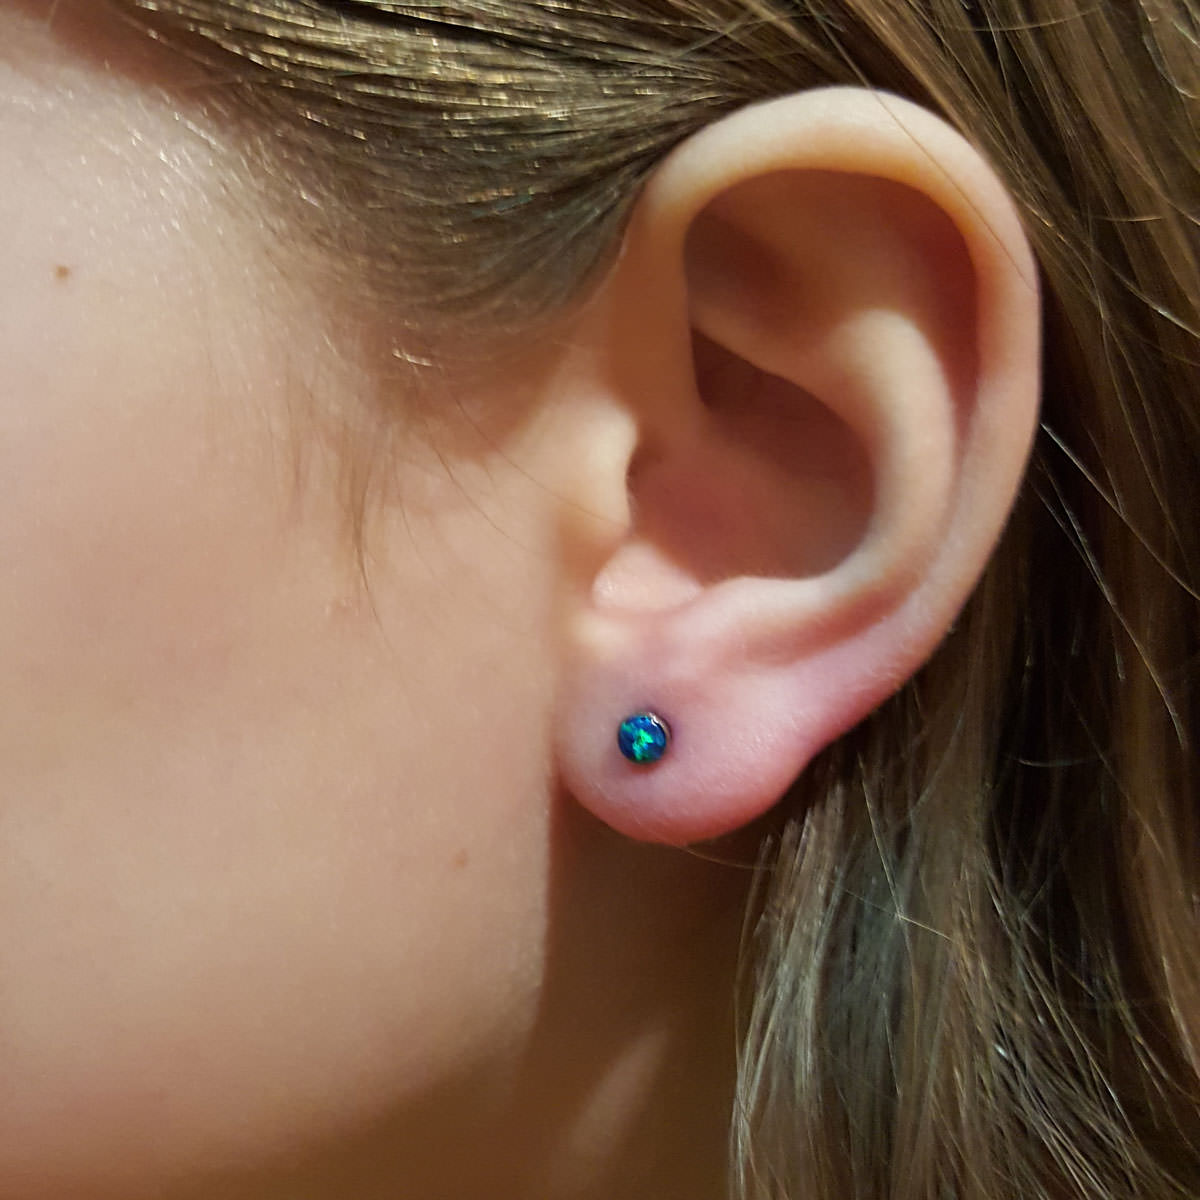 What Are Your Age Requirements For Piercings